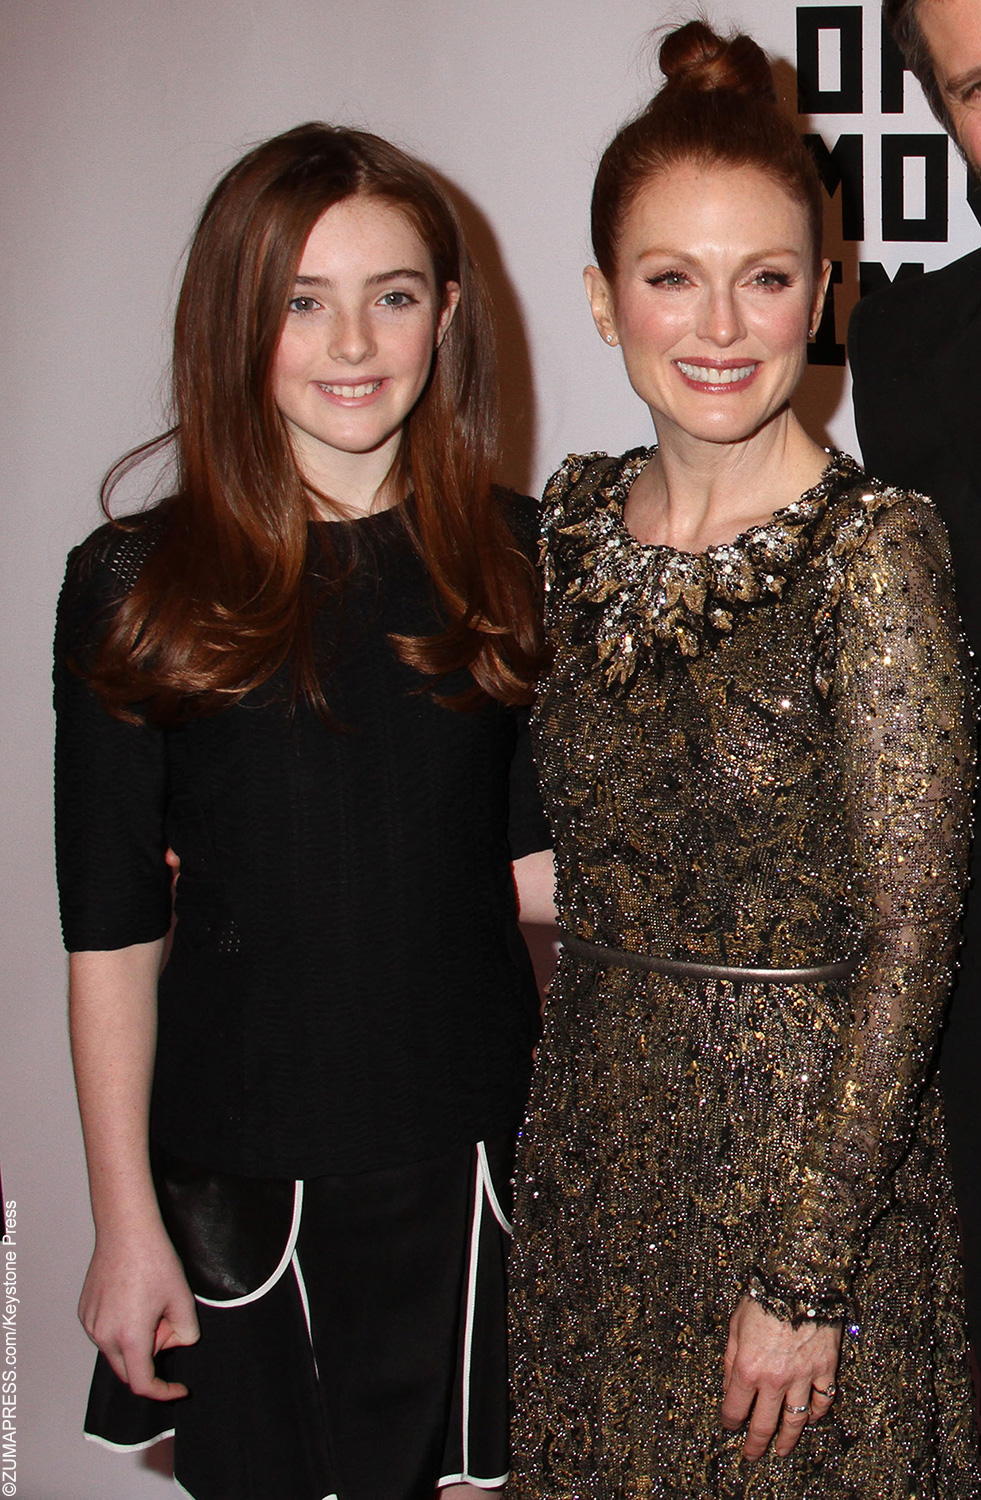 Julianne Moore's daughter Liv Freundlich, whose father is director BartFreundlich, is the spitting image of her mother. Both have long deep-red locks – Liv's got some amazing genes.